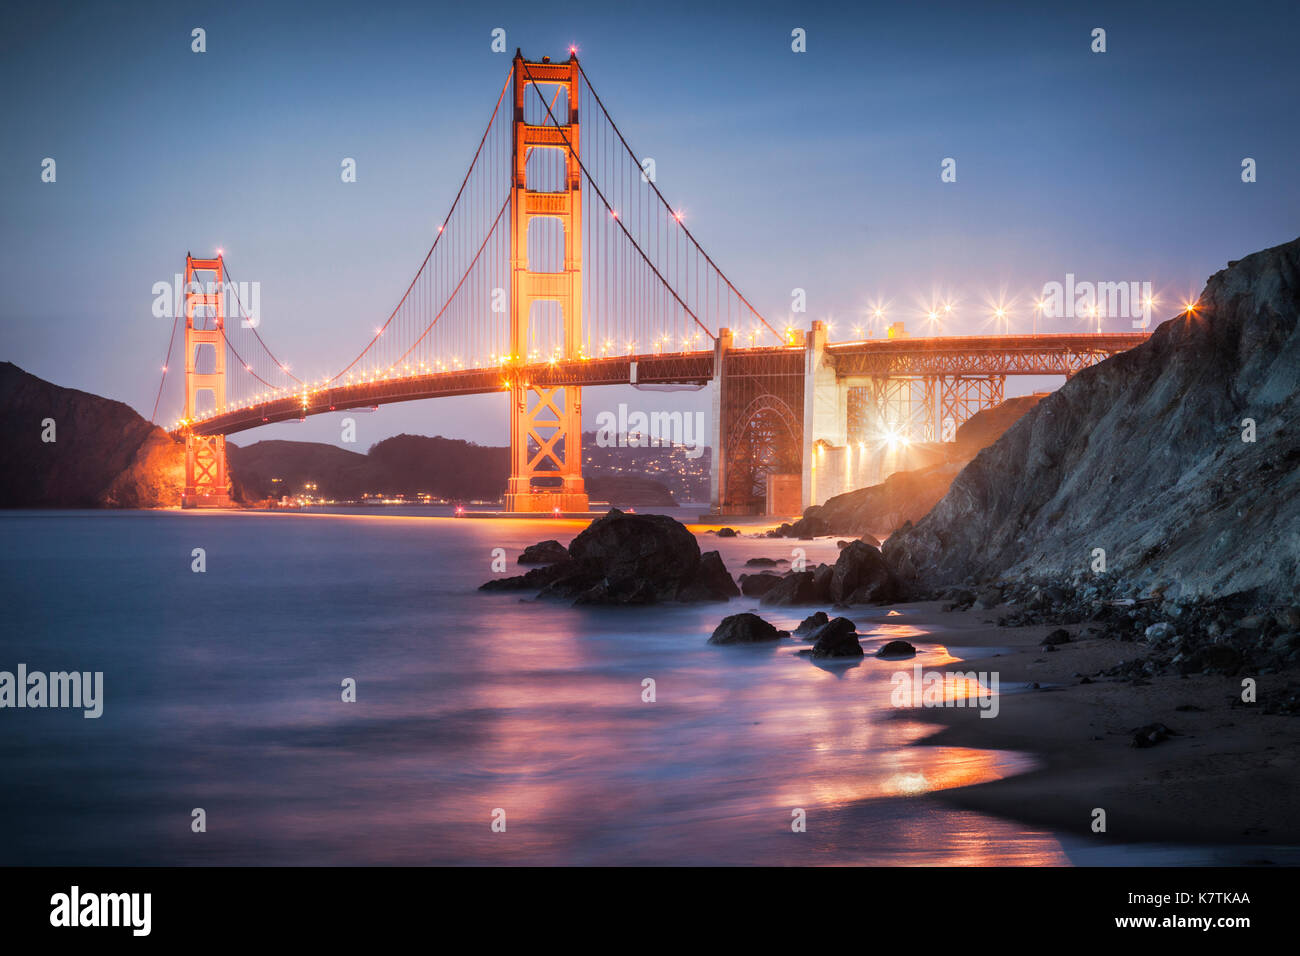 The Golden Gate Bridge, San Francisco, illuminated after sunset. - Stock Image